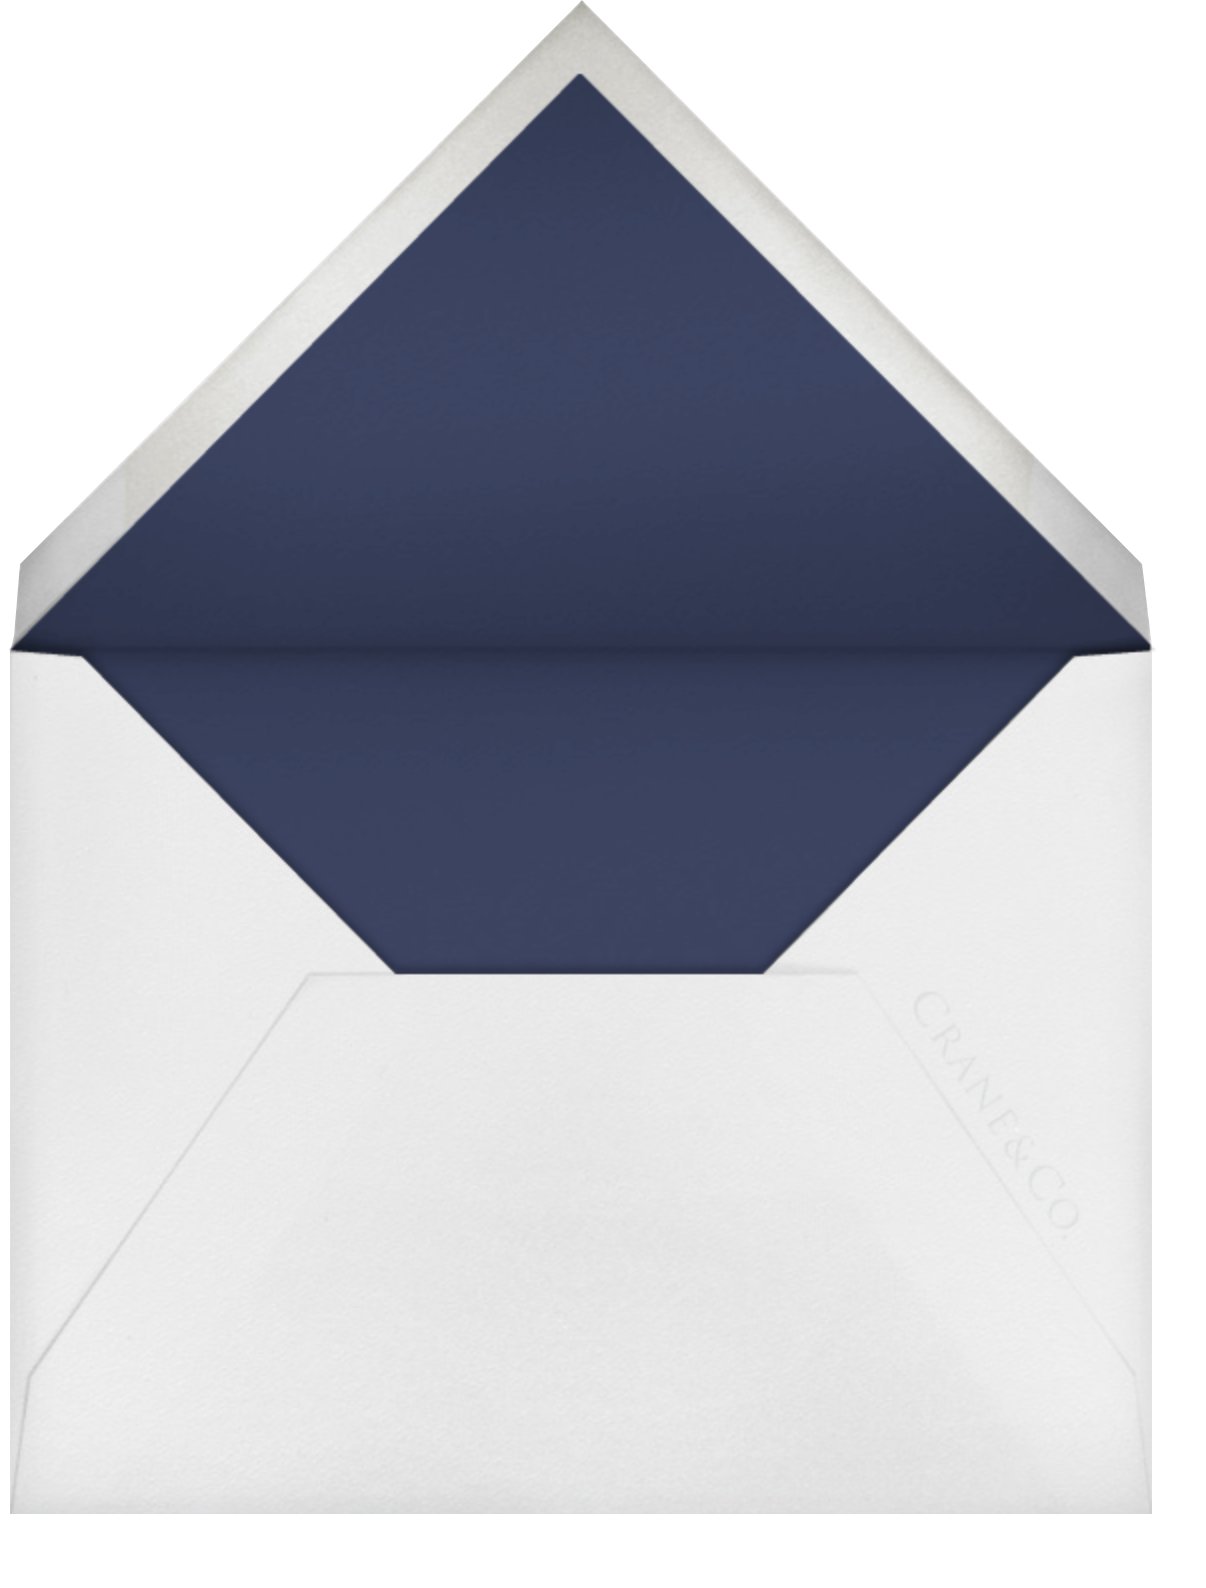 Forsythia (Save the Date) - Navy - Crane & Co. - Save the date - envelope back